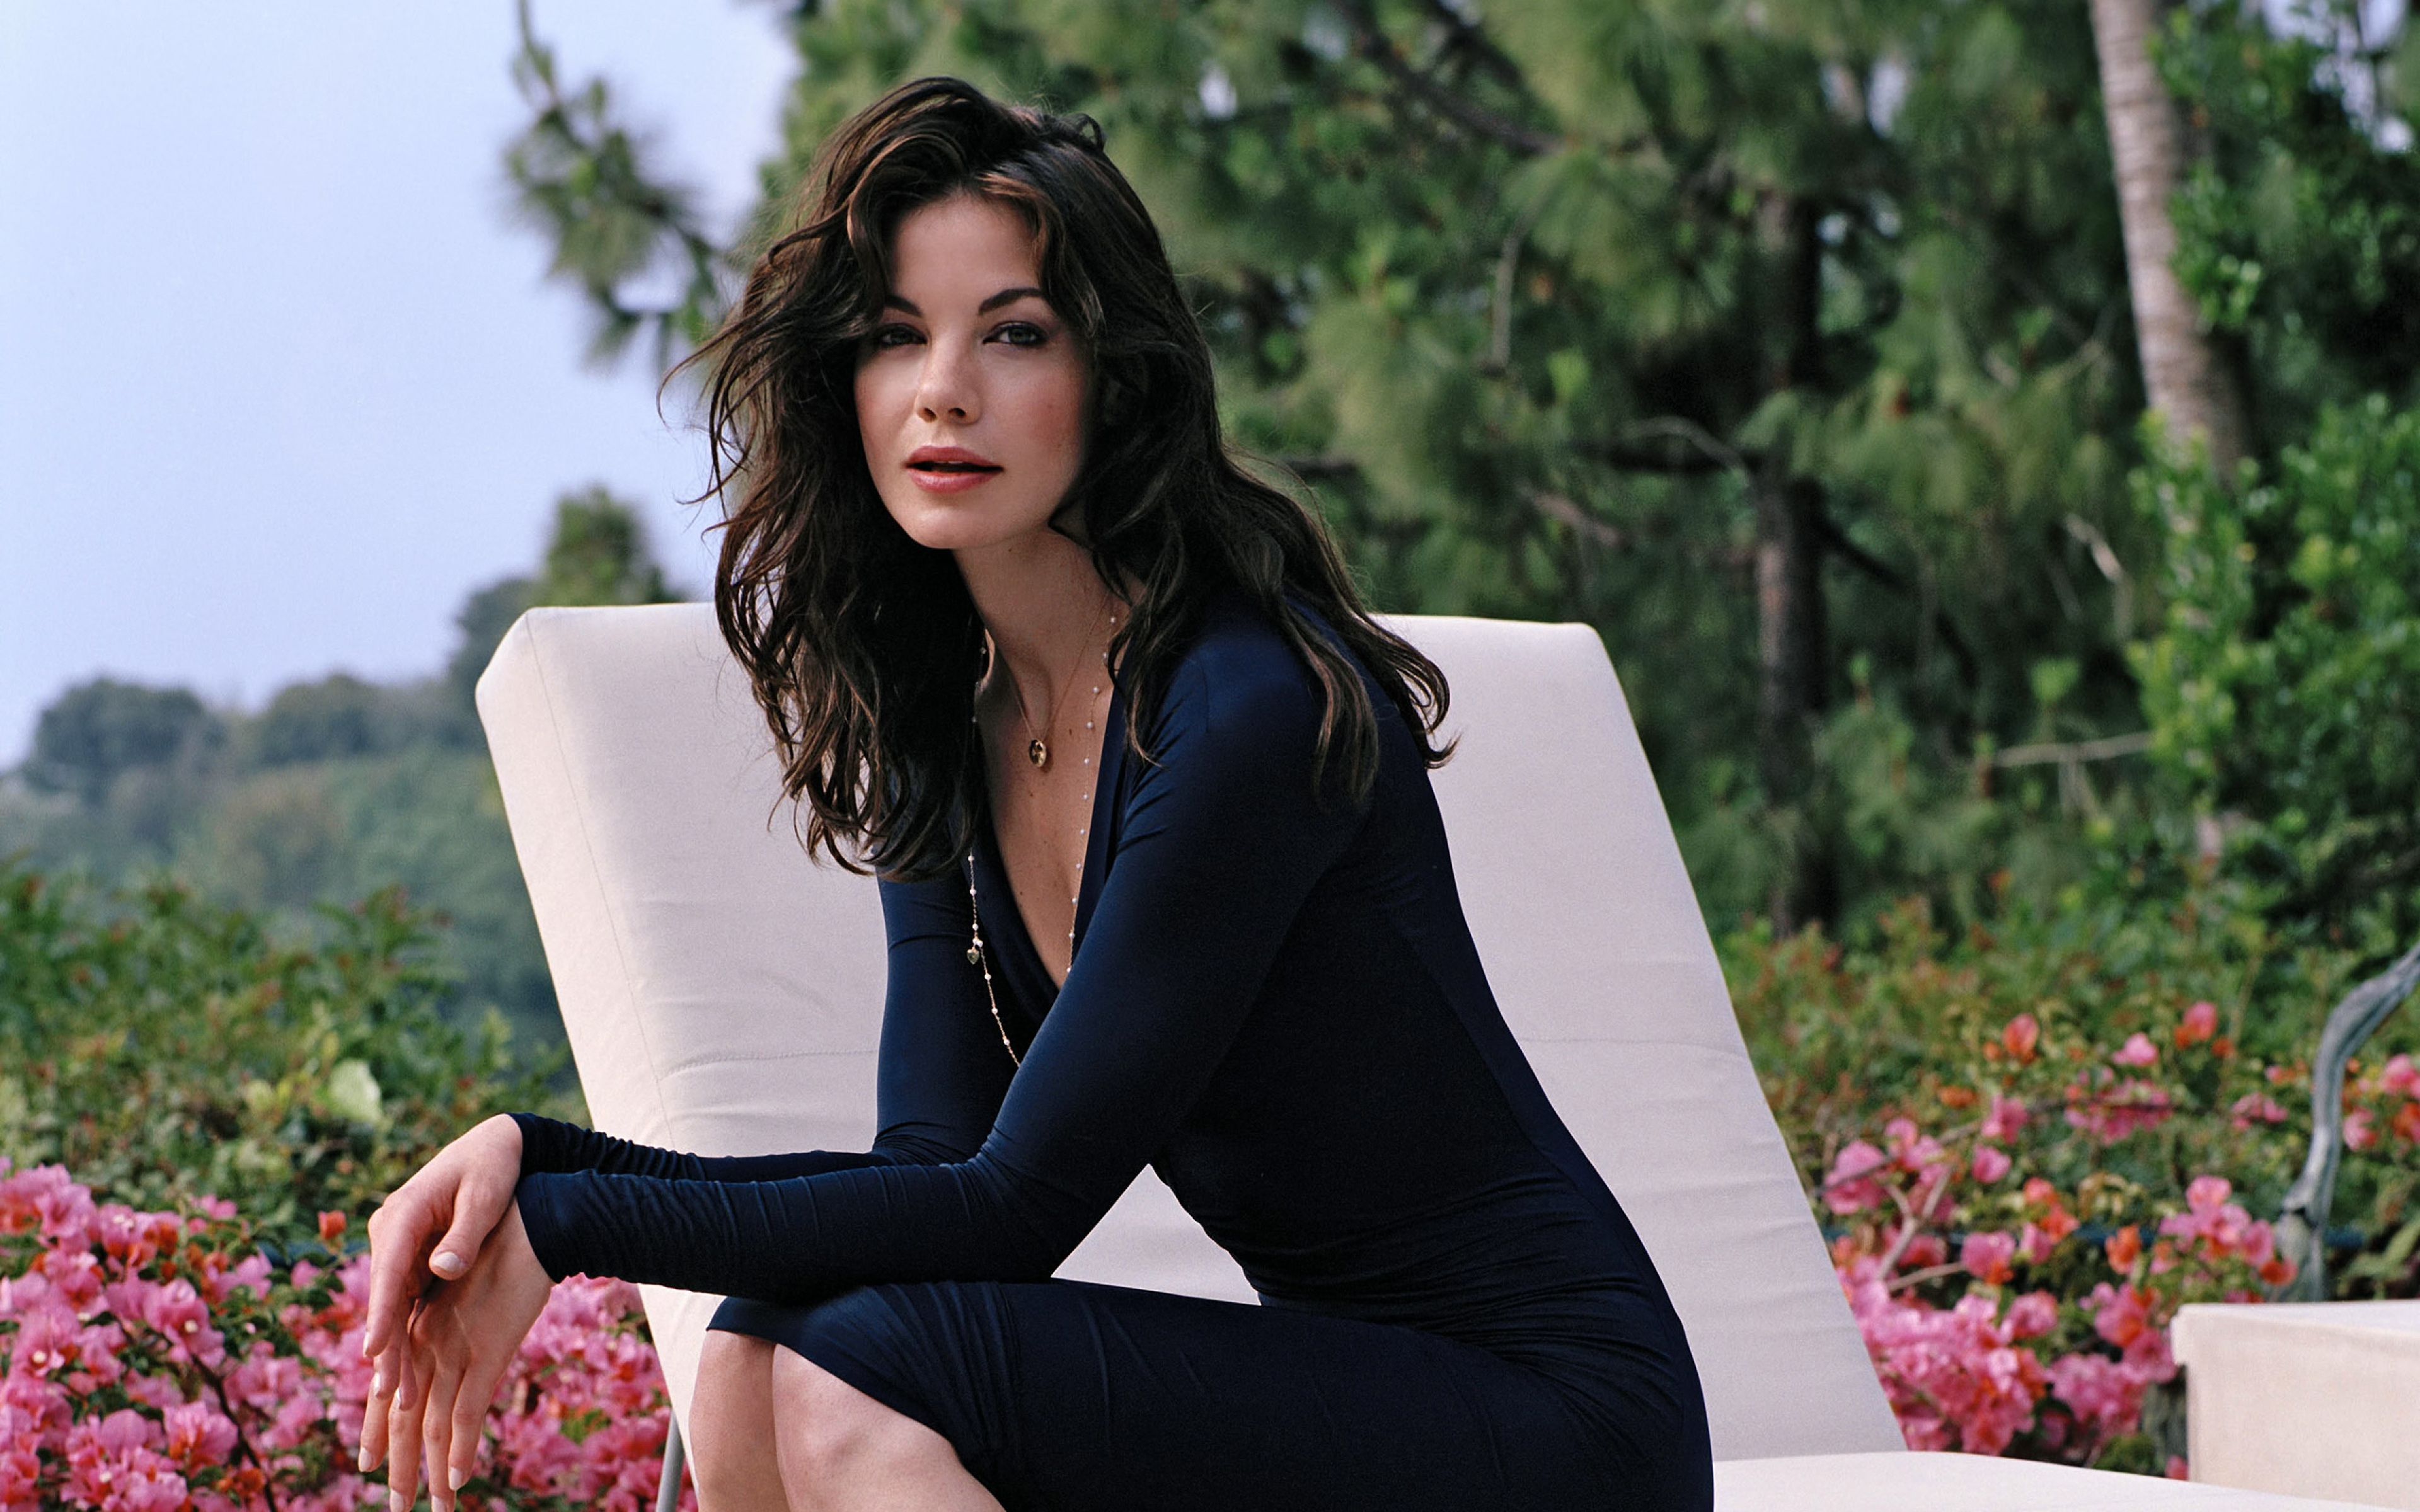 3840x2400 - Michelle Monaghan Wallpapers 22